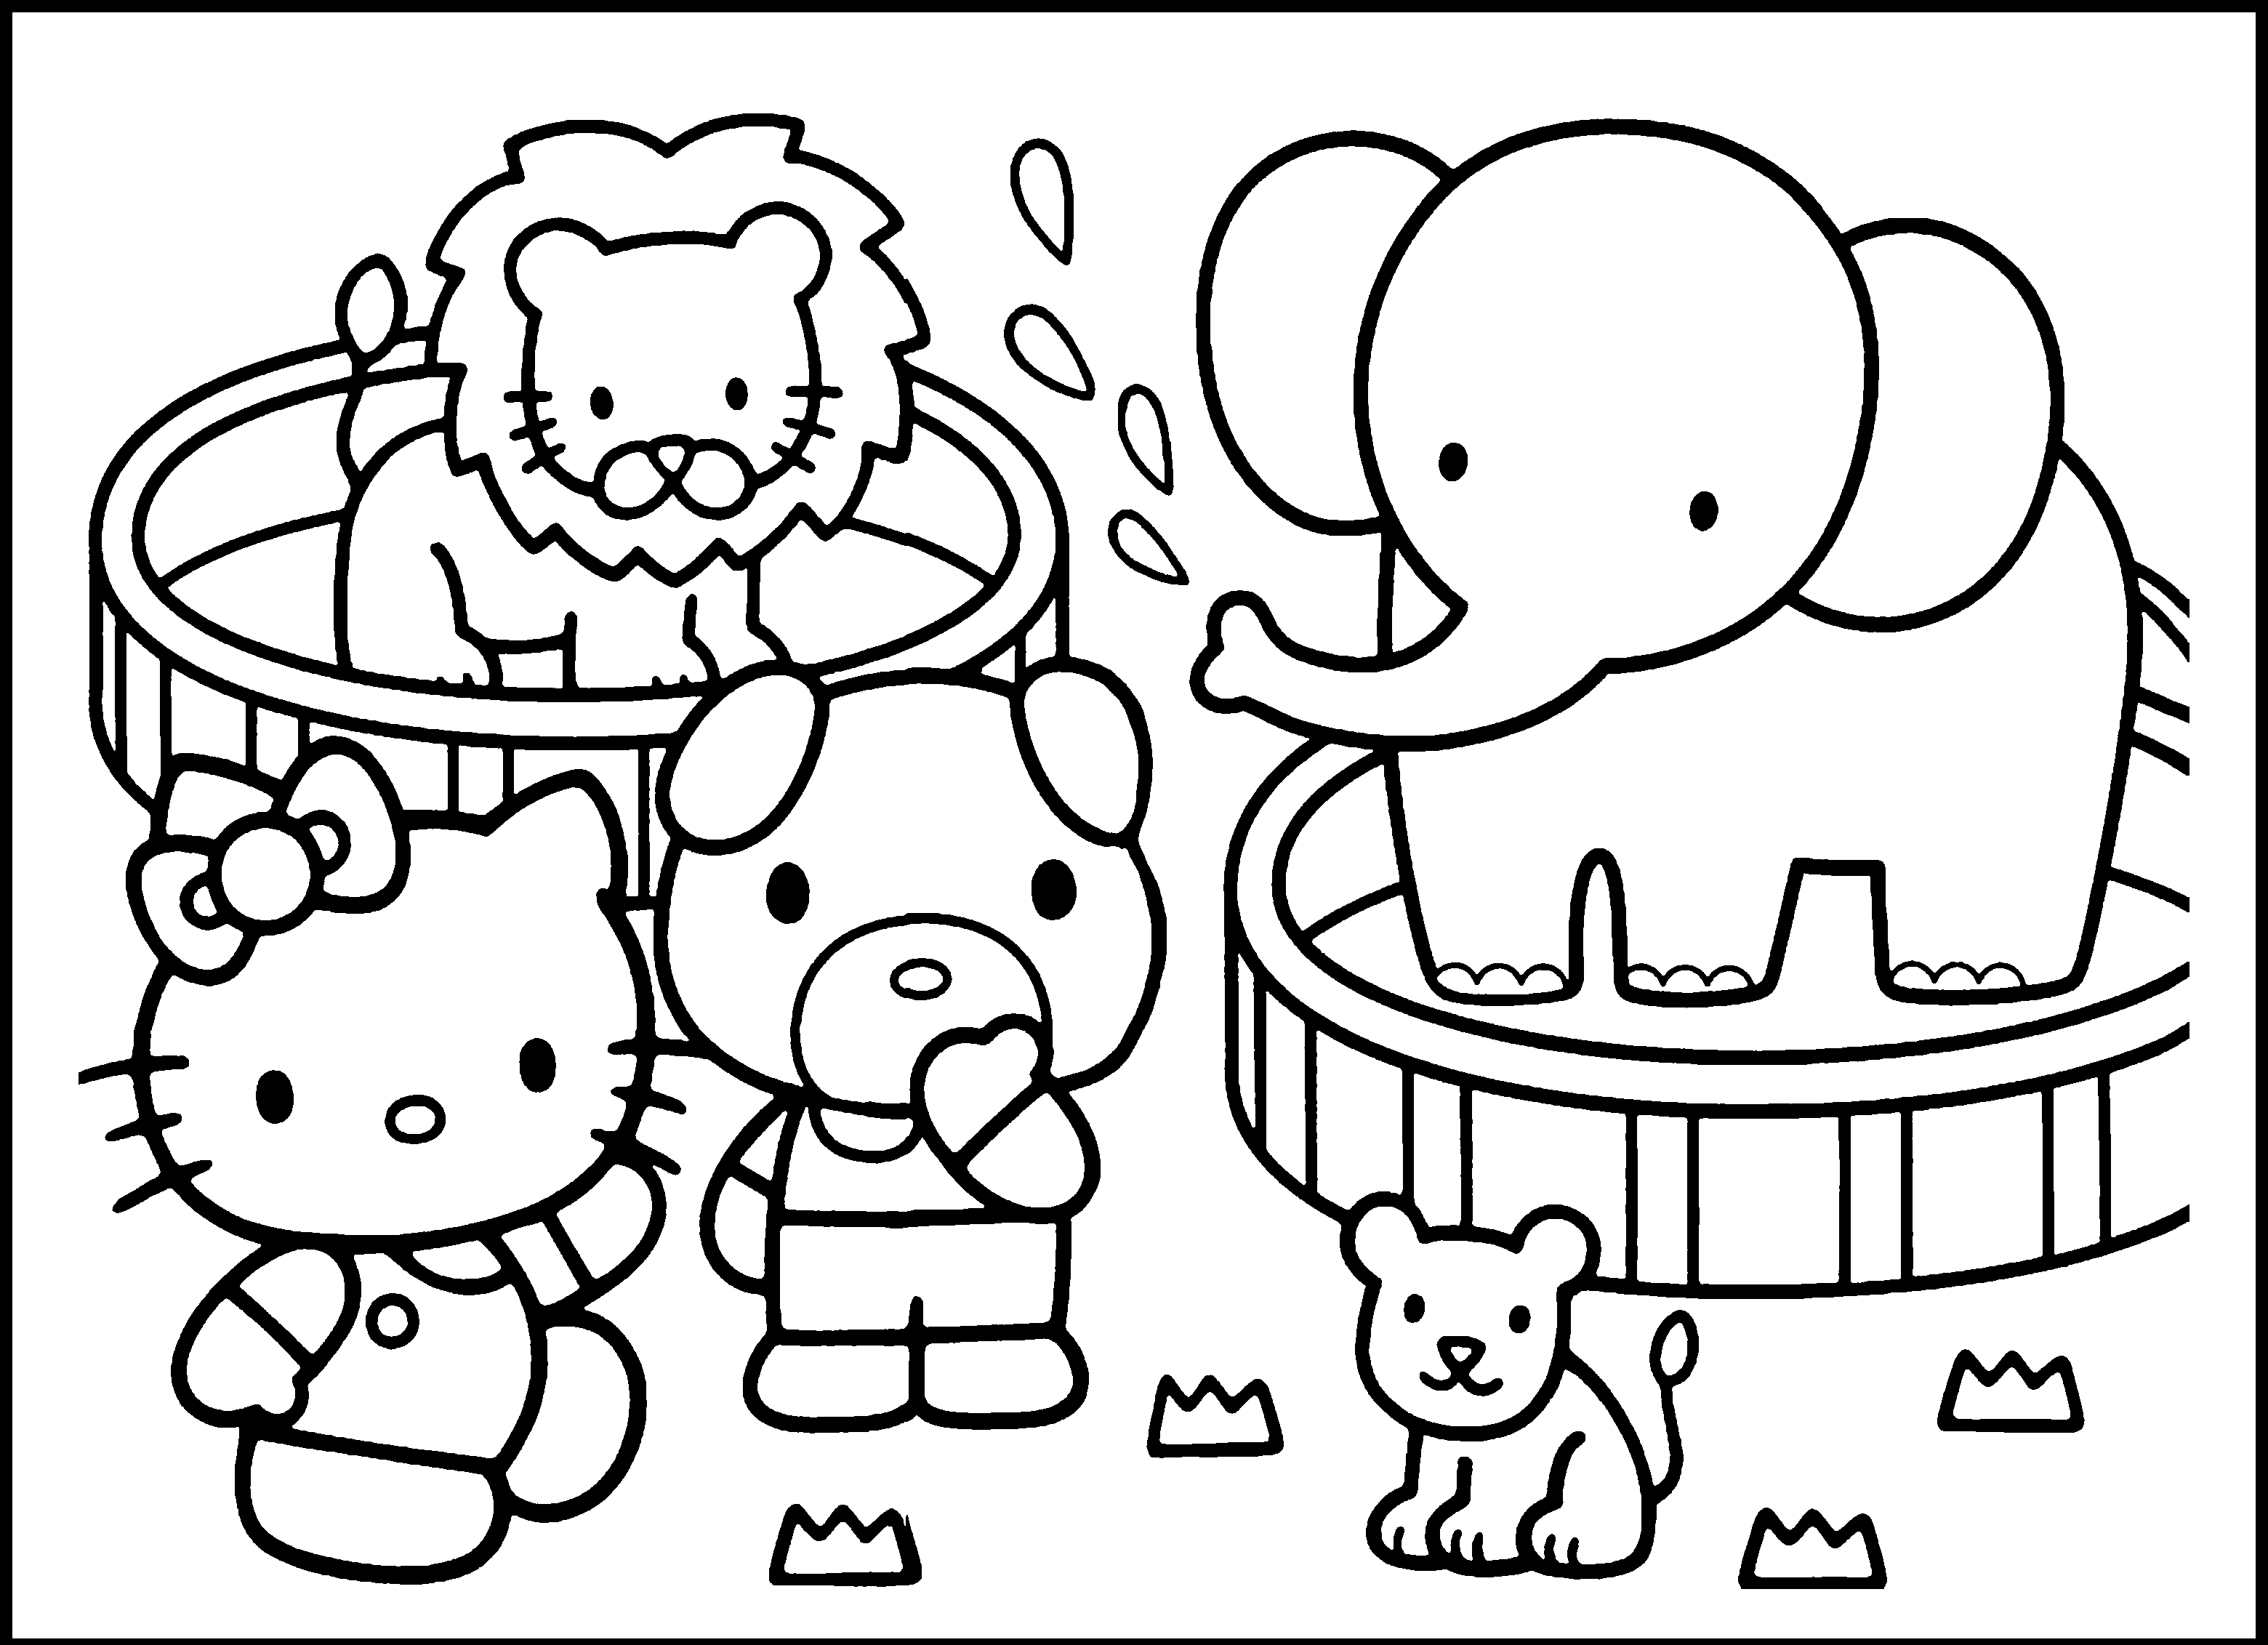 zoo coloring pages - preschool zoo coloring pages